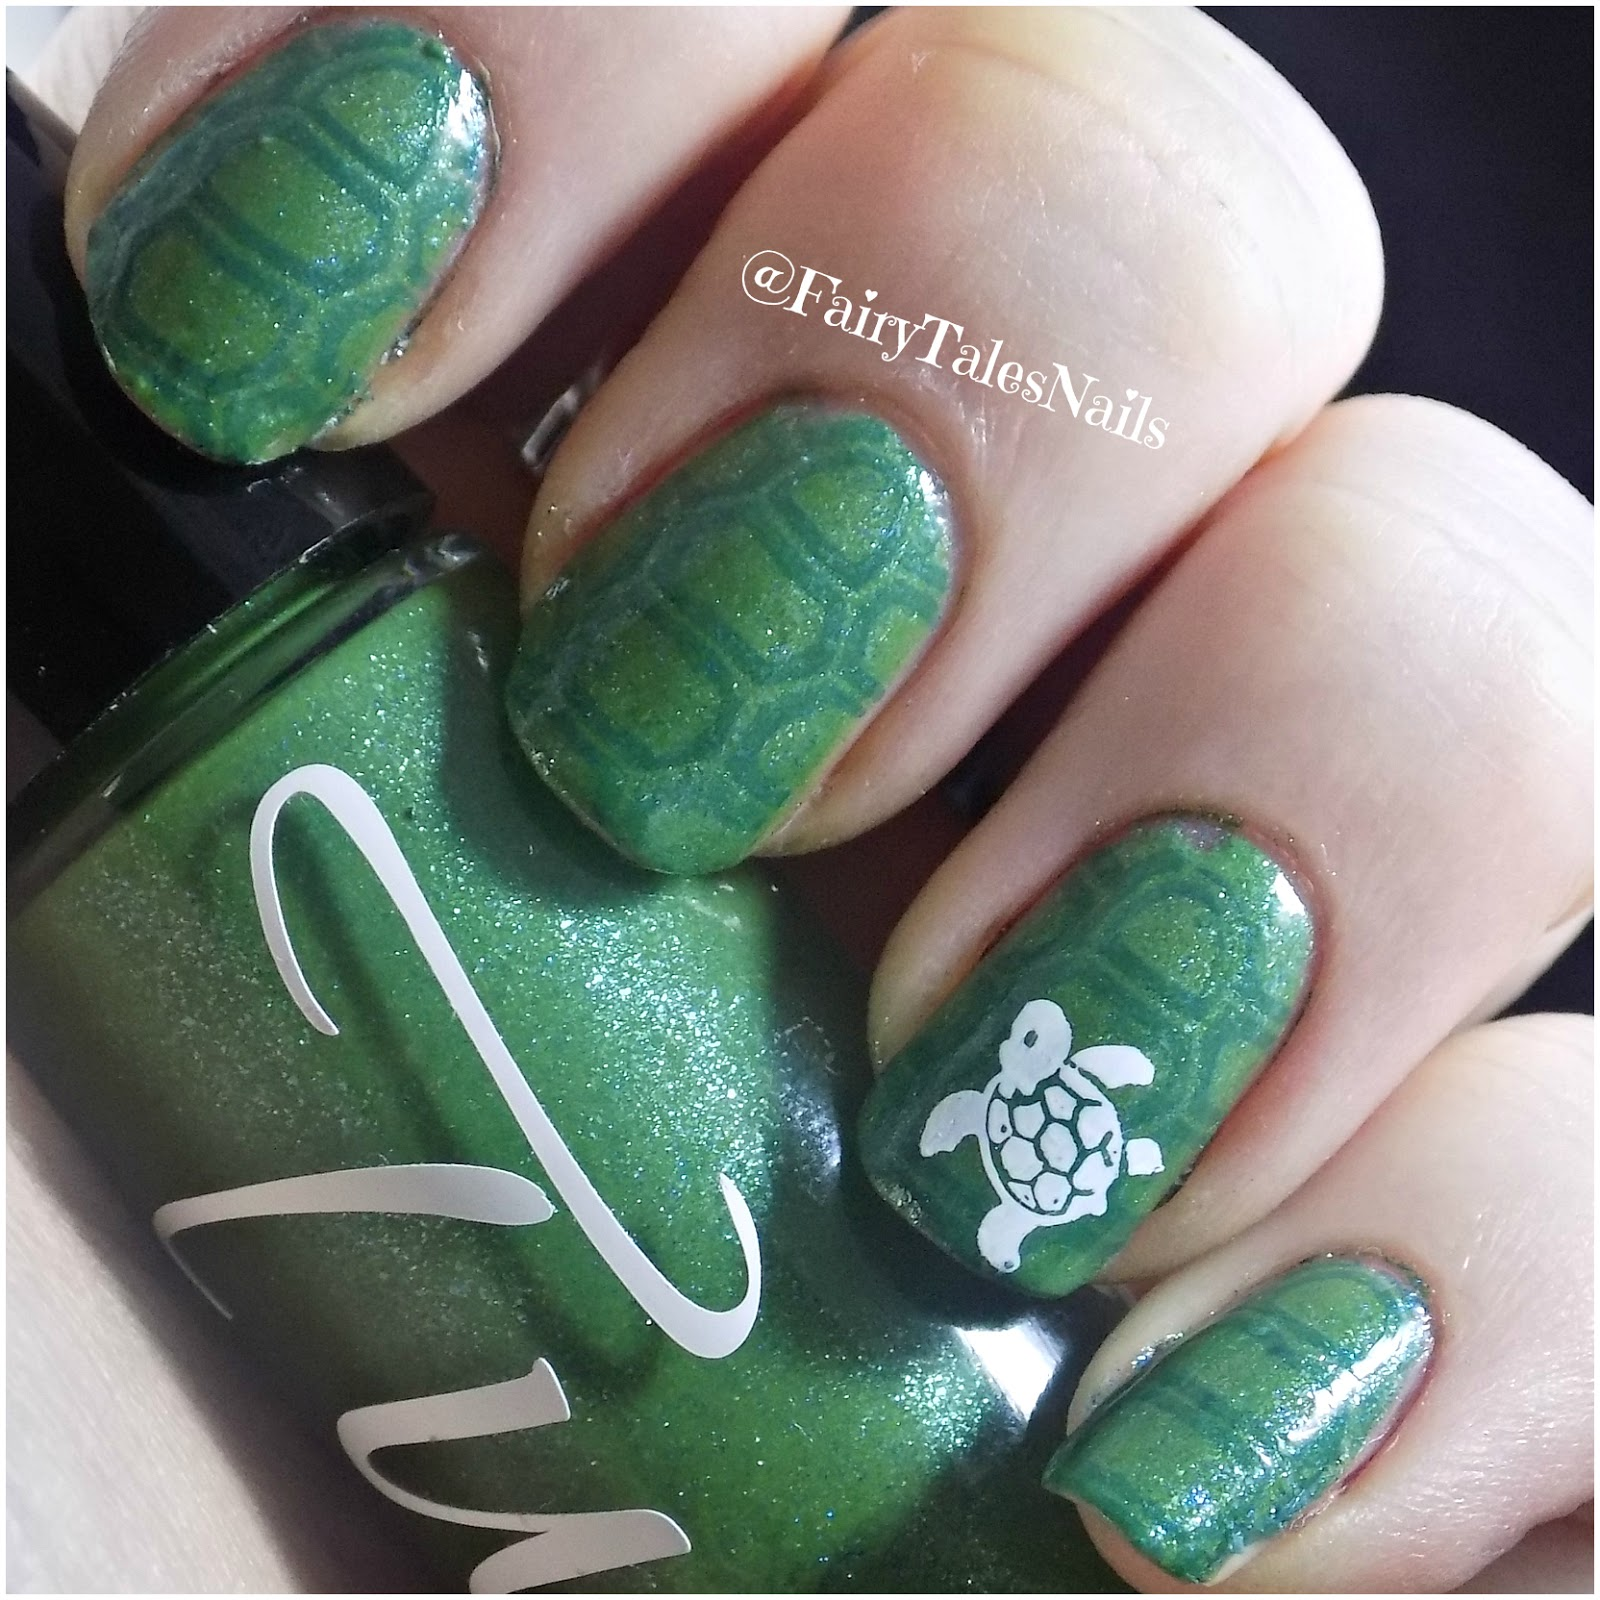 Fairytales nails tux polish sea turtle nail art i managed to use this beautiful polish and create in my opinion a very cute sea turtle manicure i completely fell in love with this polish as soon as i saw prinsesfo Gallery